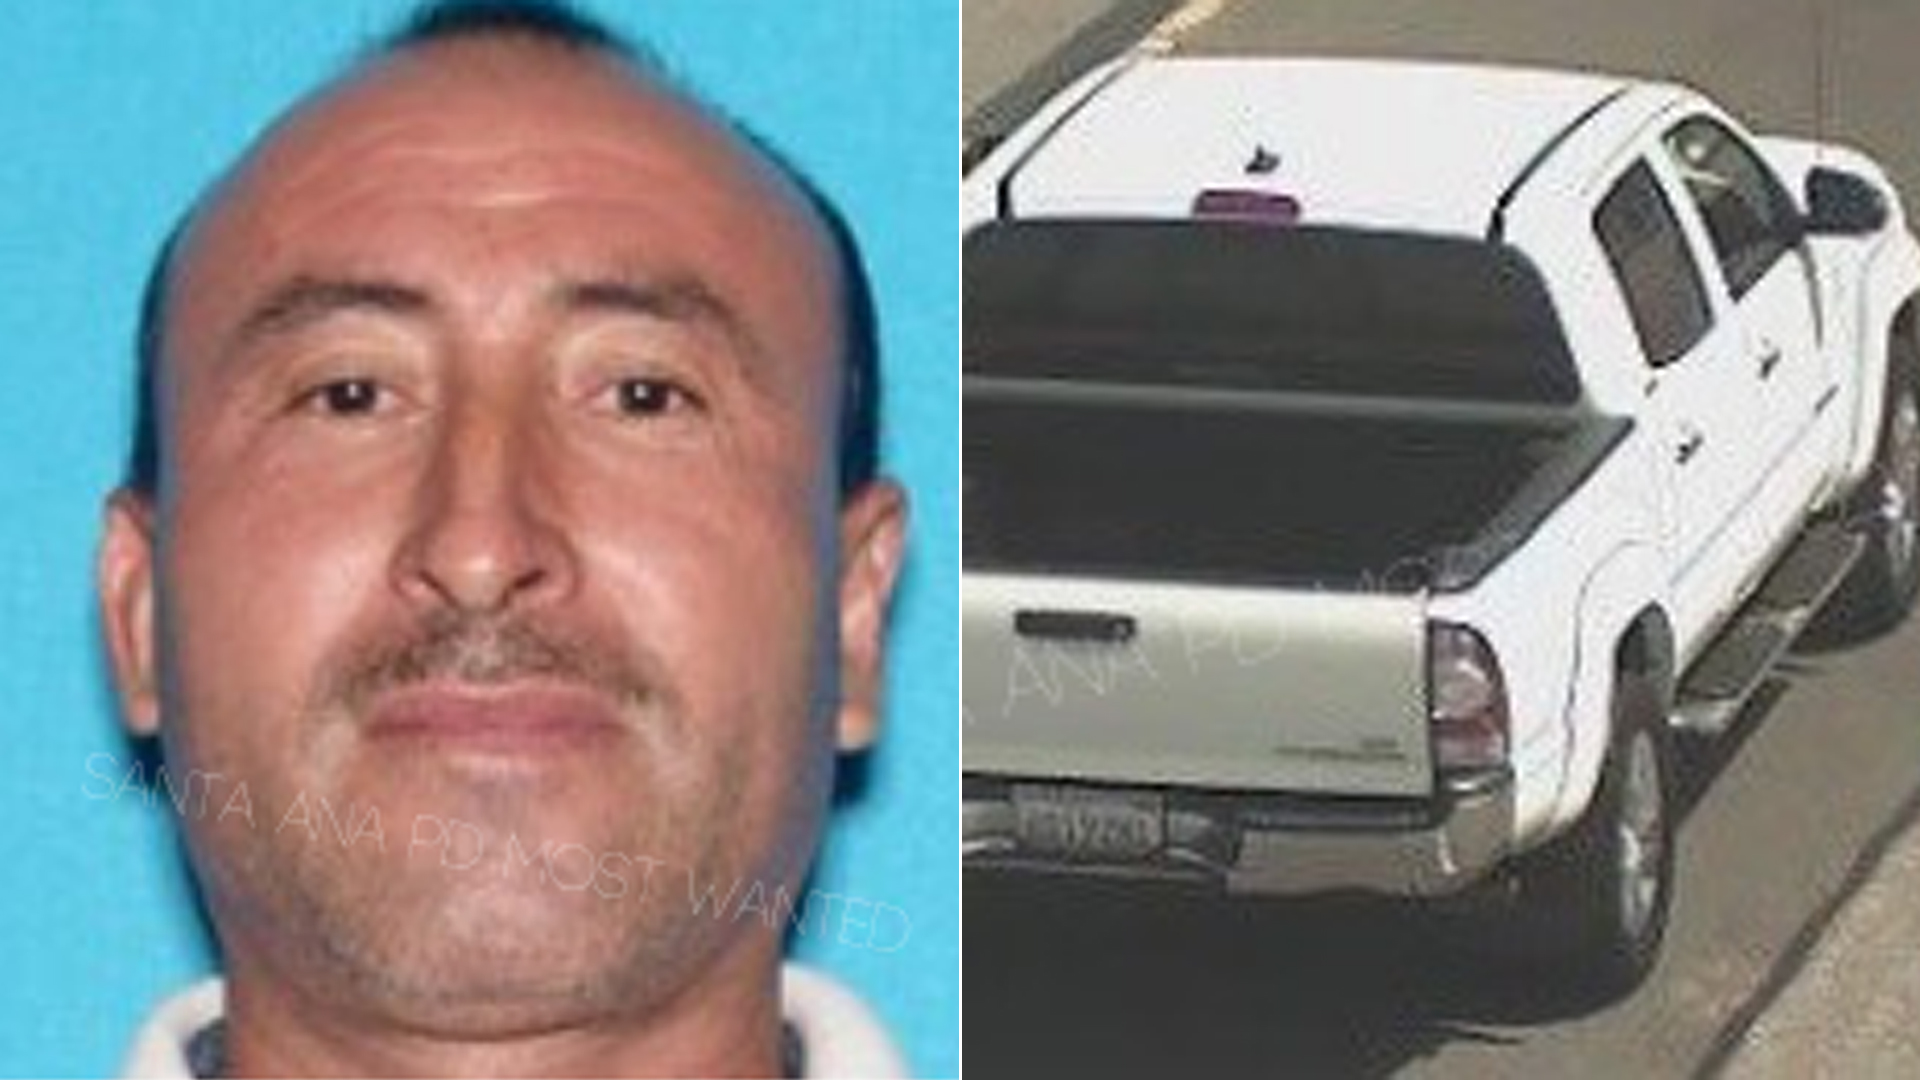 Alexander Chicas and the truck he's believed to be traveling in are seen in photos released Sept. 4, 2019, by the Santa Ana Police Department.